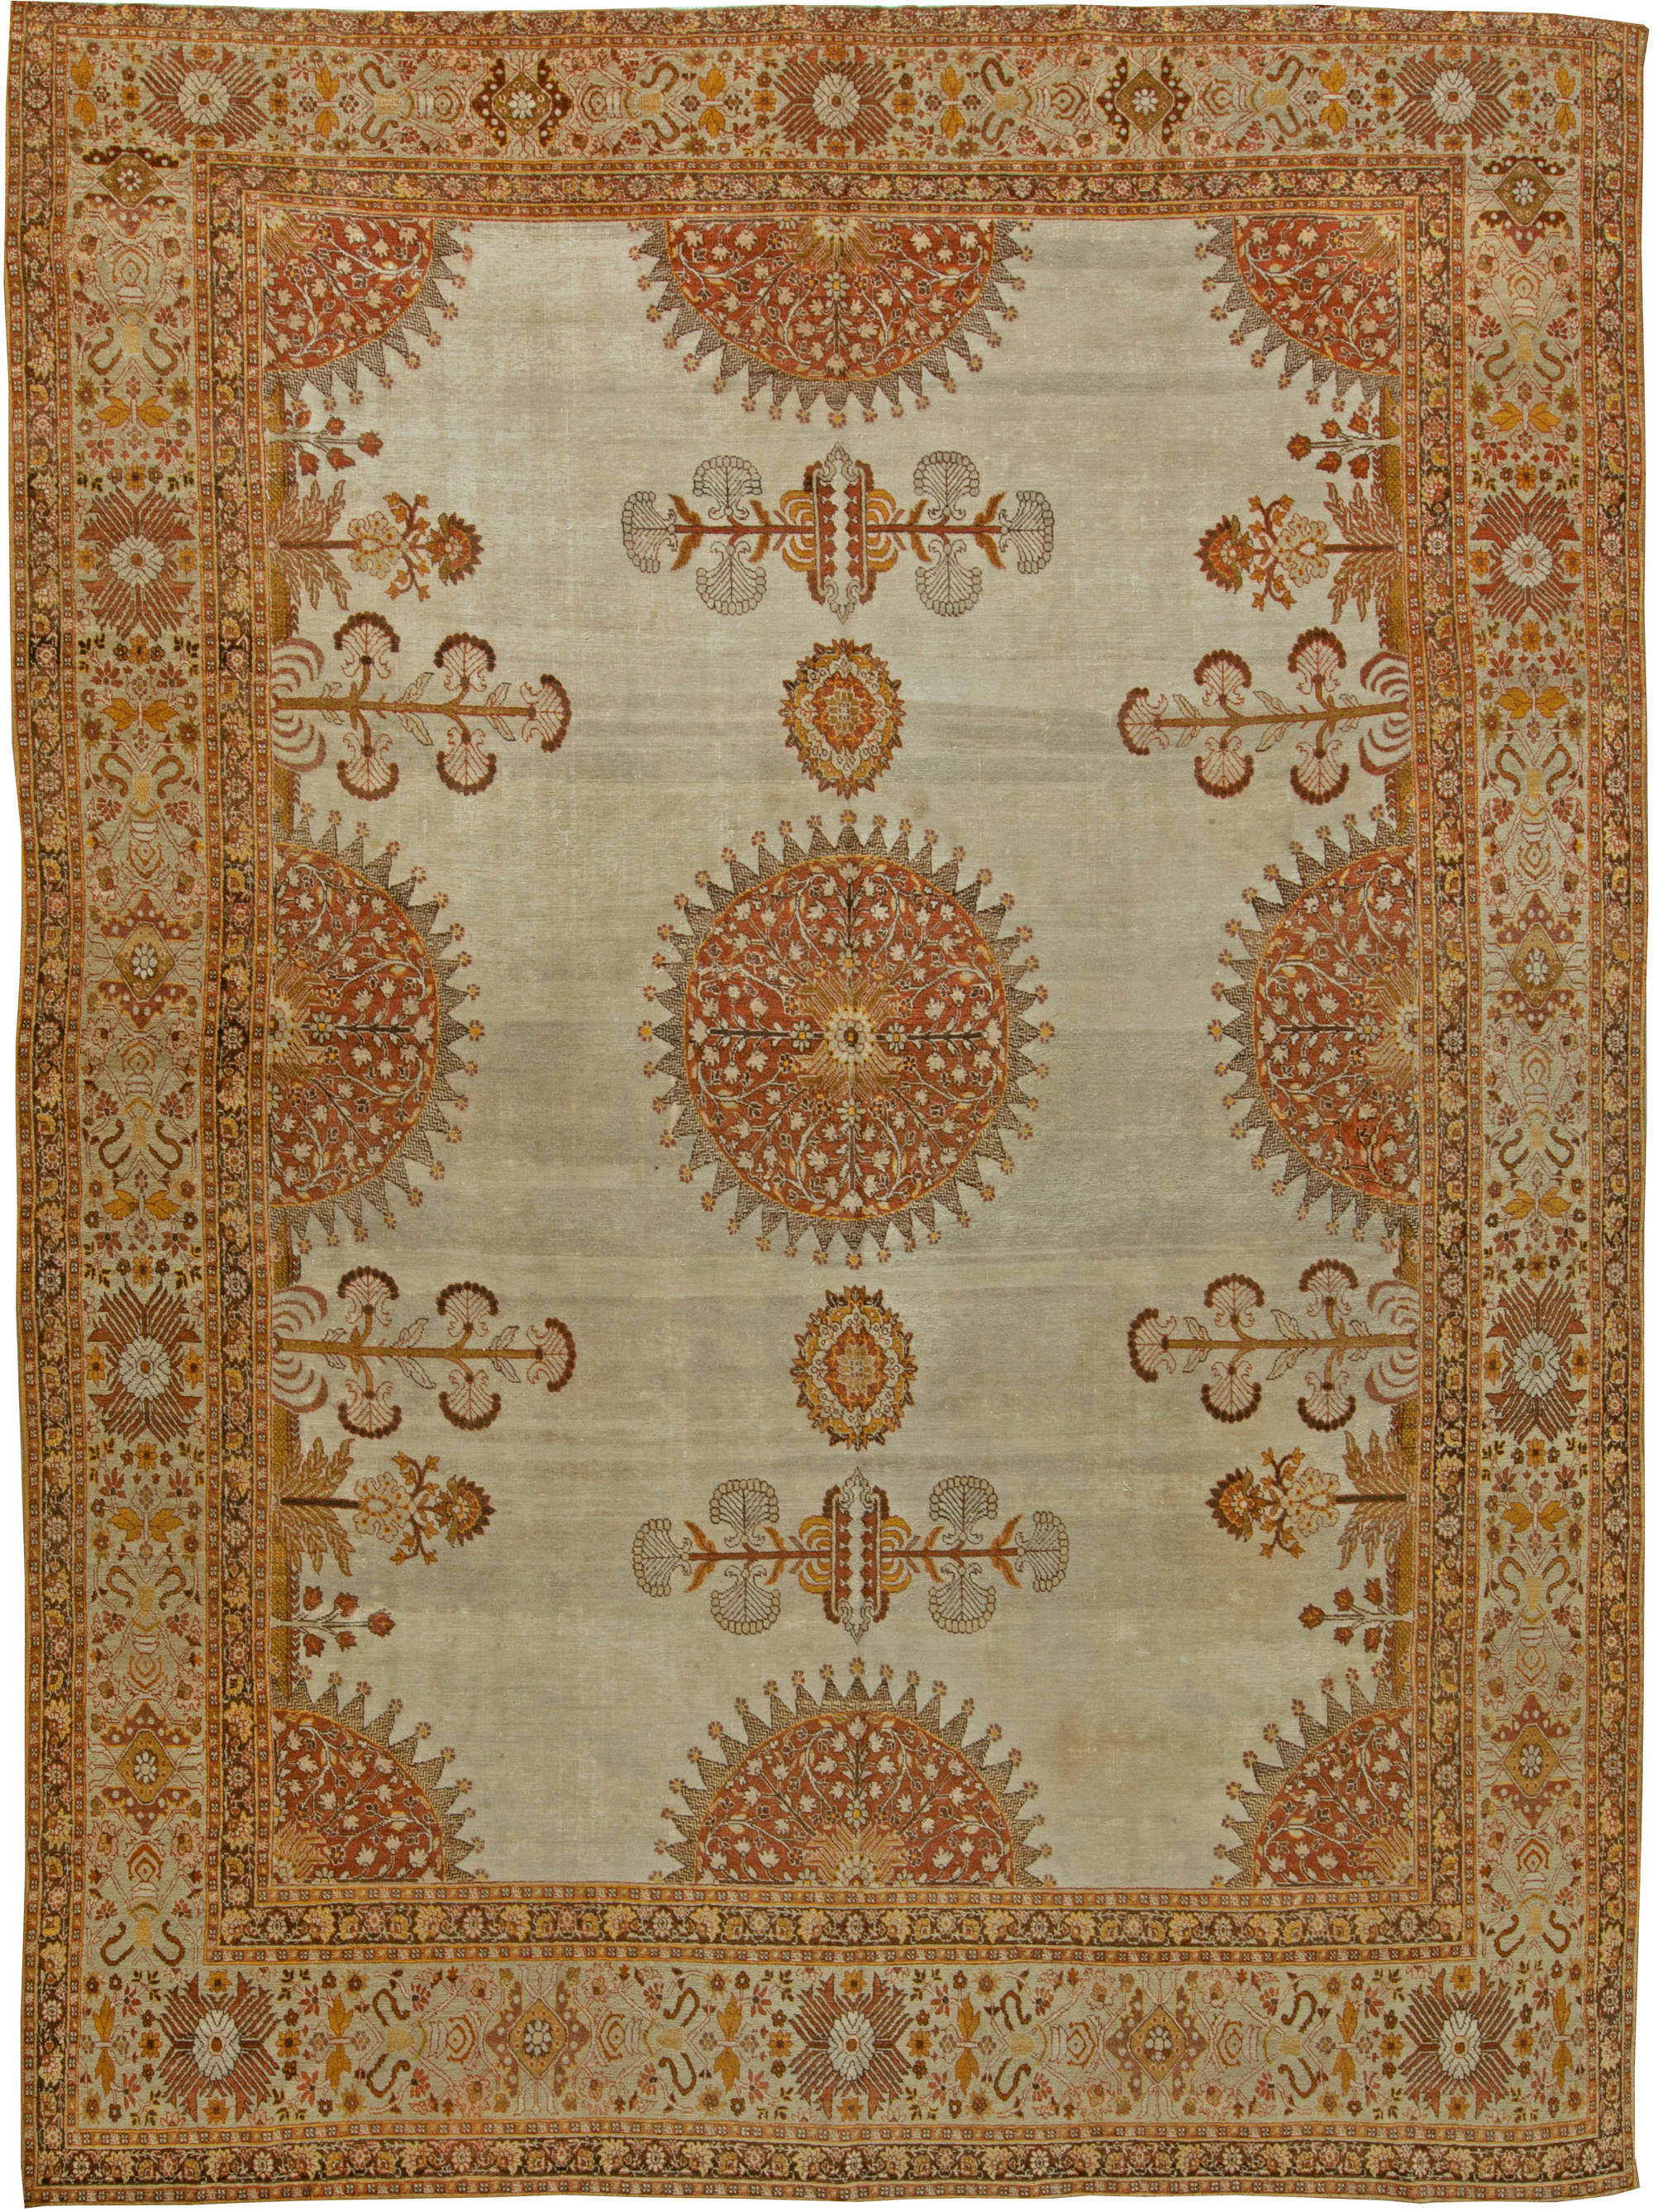 Tabriz Rugs Amp Carpets Antique Persian Tabriz Carpets